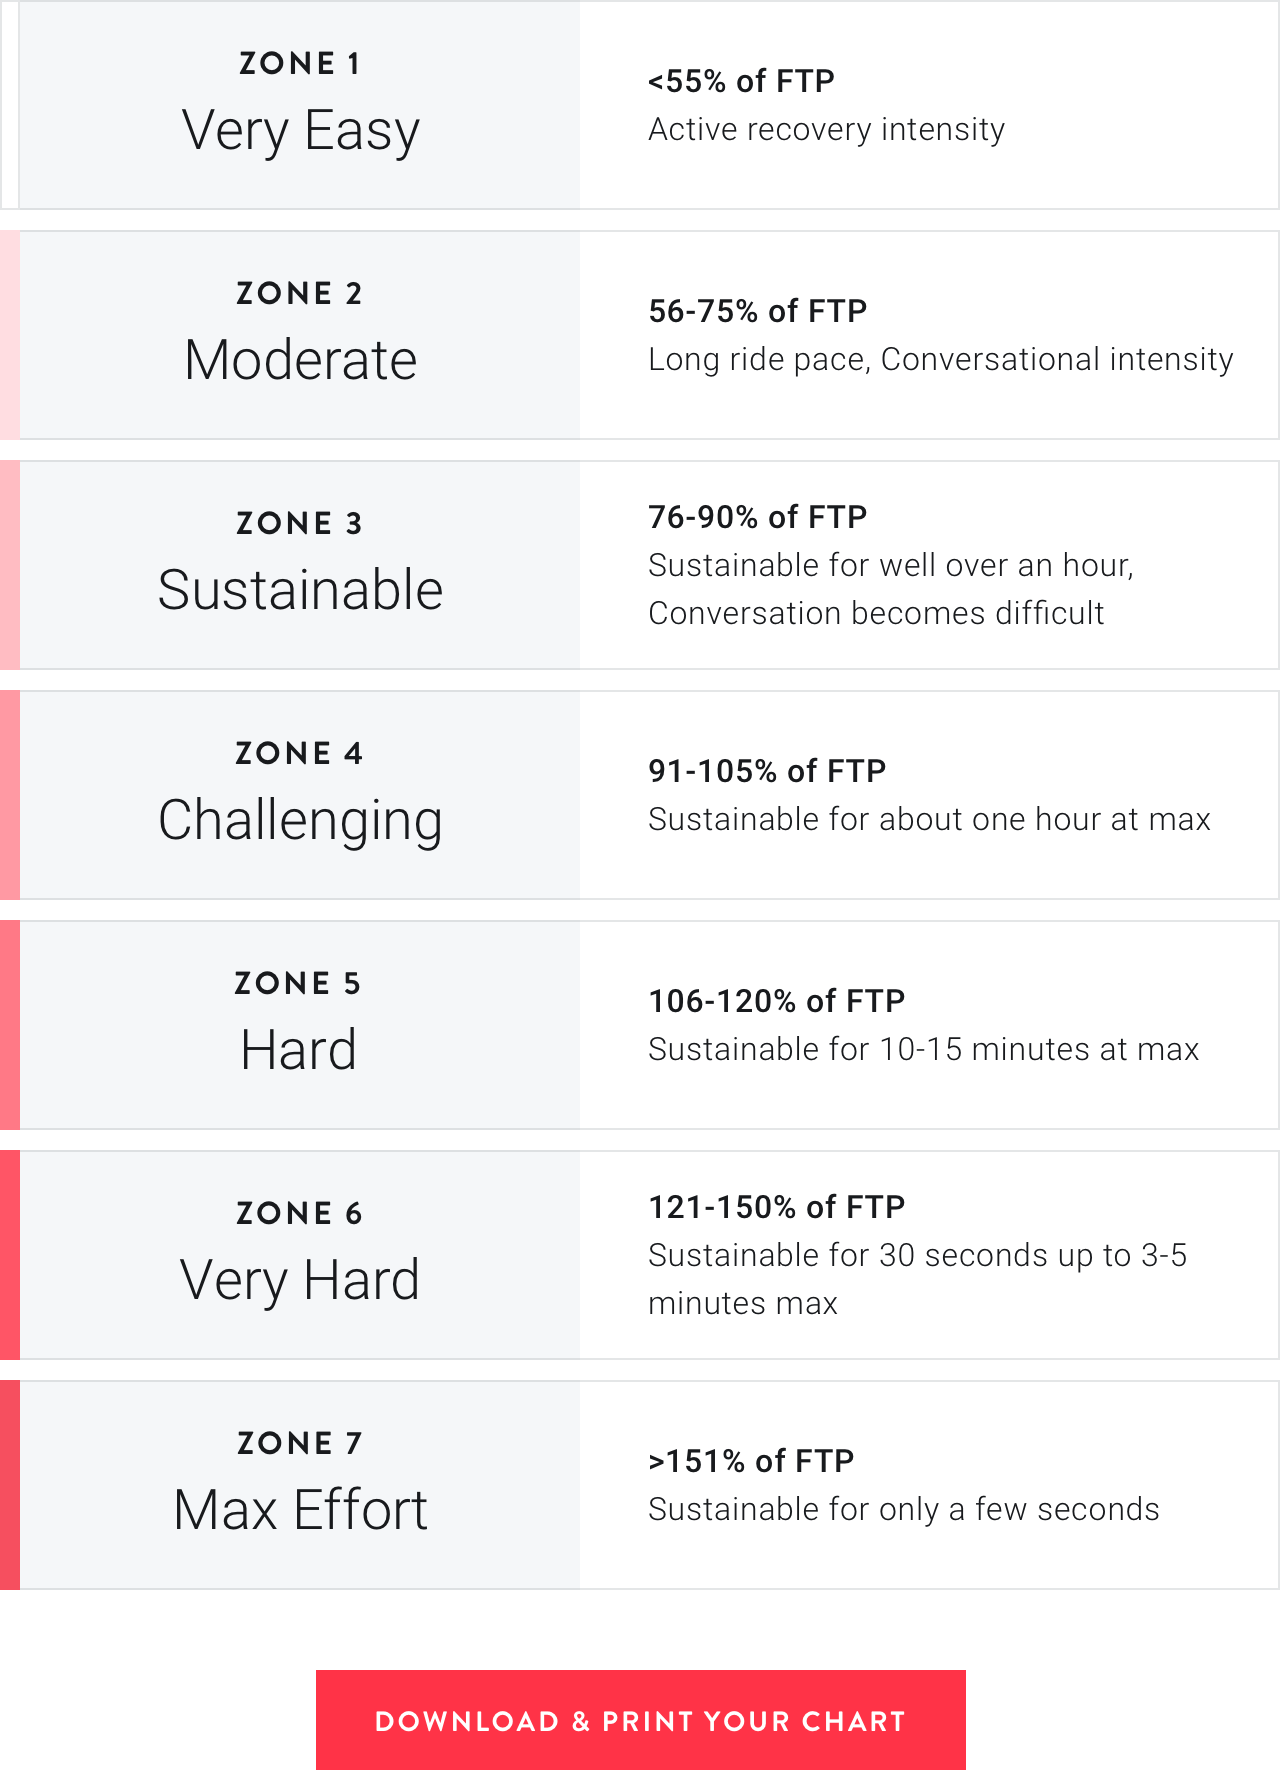 As You Continue Your Power Zone Training, You Will Likely Notice Each  Zone's Output Becoming Easier To Achieve. Feel Free To Re-Take The 20-Min  Ftp Test